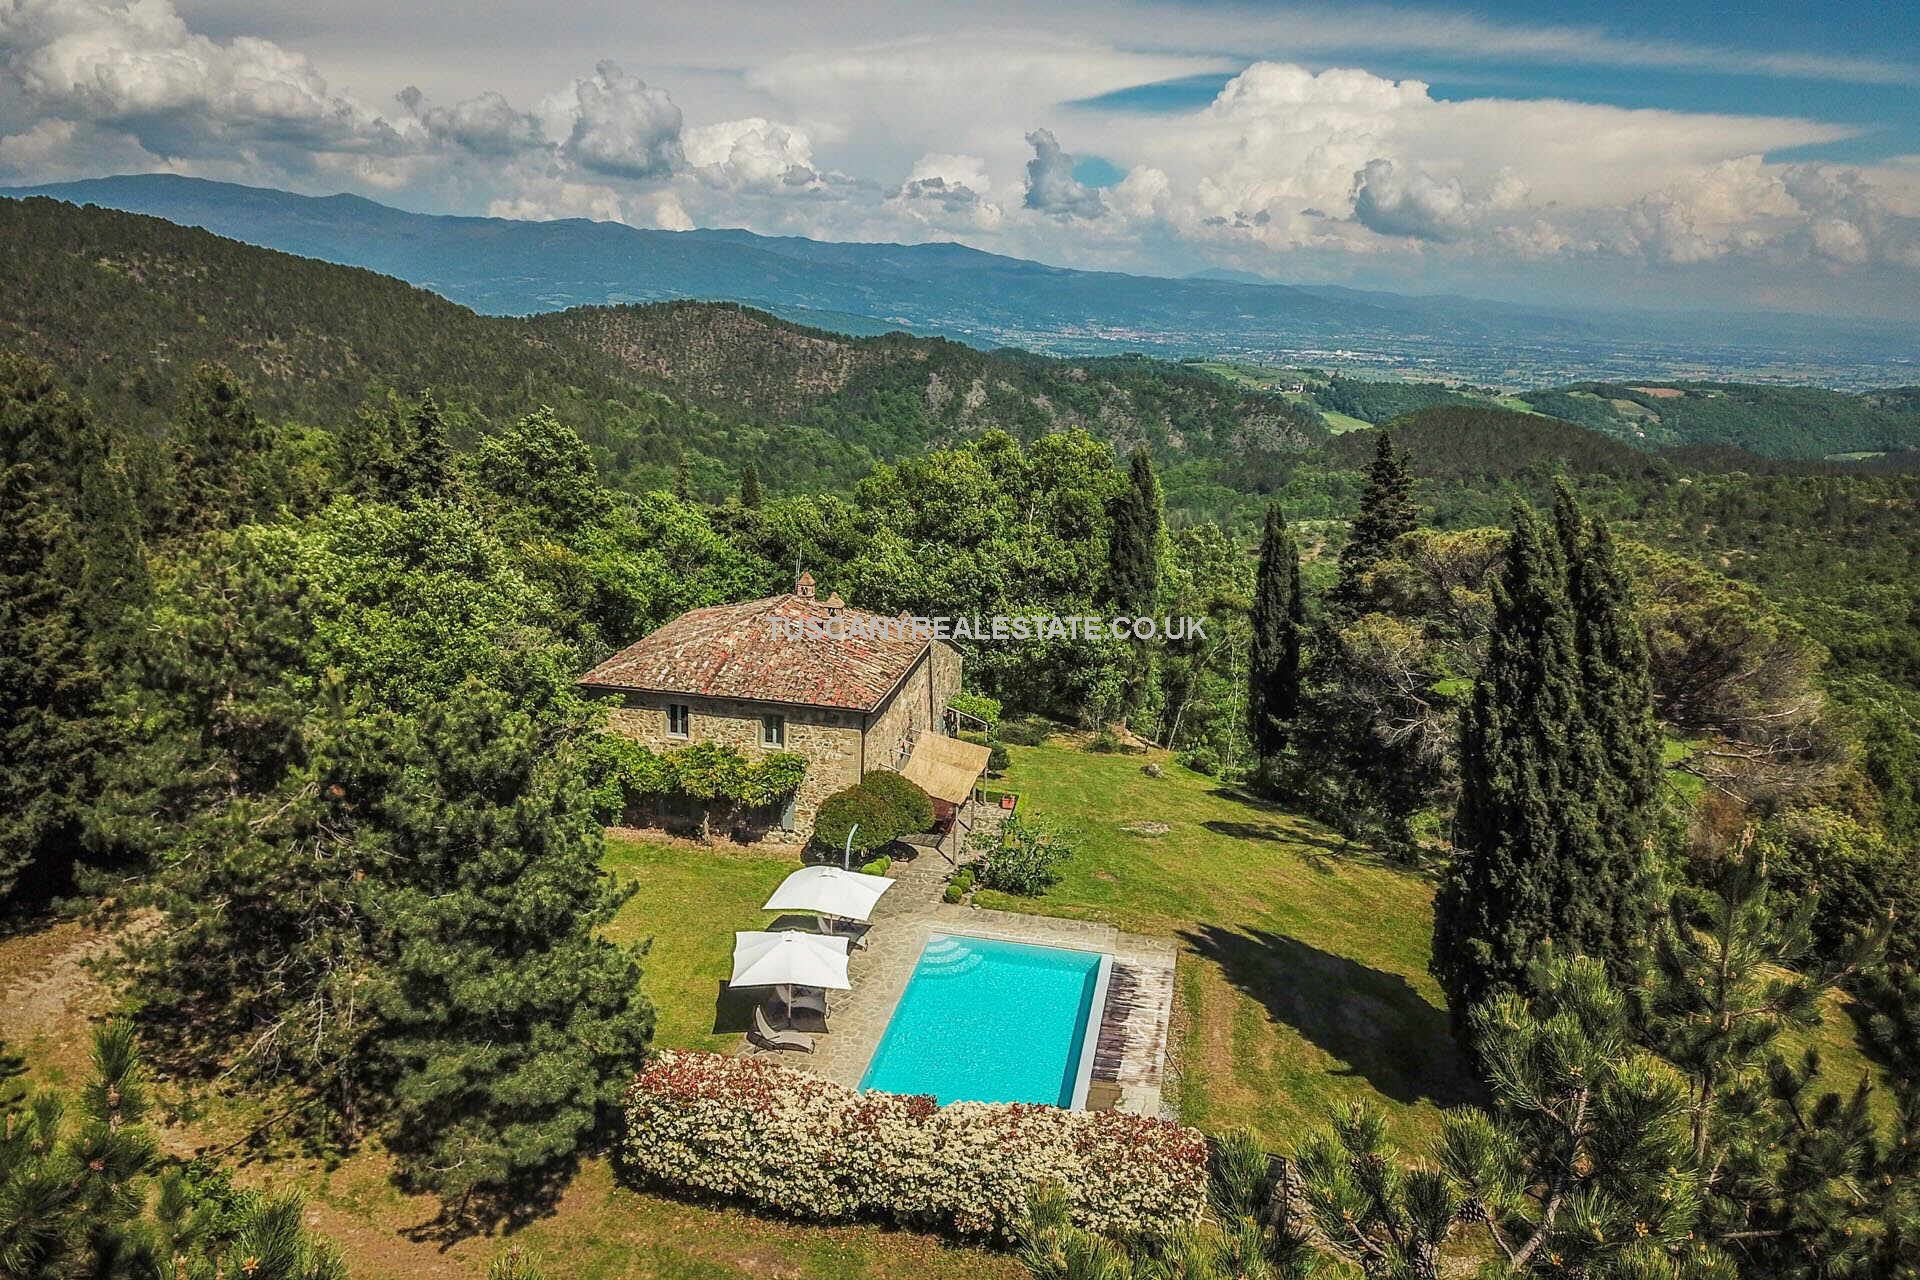 This farmhouse for sale in Italy should certainly be on your viewing list. Located in a quiet rural location near to Anghiari in Tuscany, the property has been fully restored has 5 bedrooms, swimming pool and great panoramic views. Traditional Tuscan style, features and home